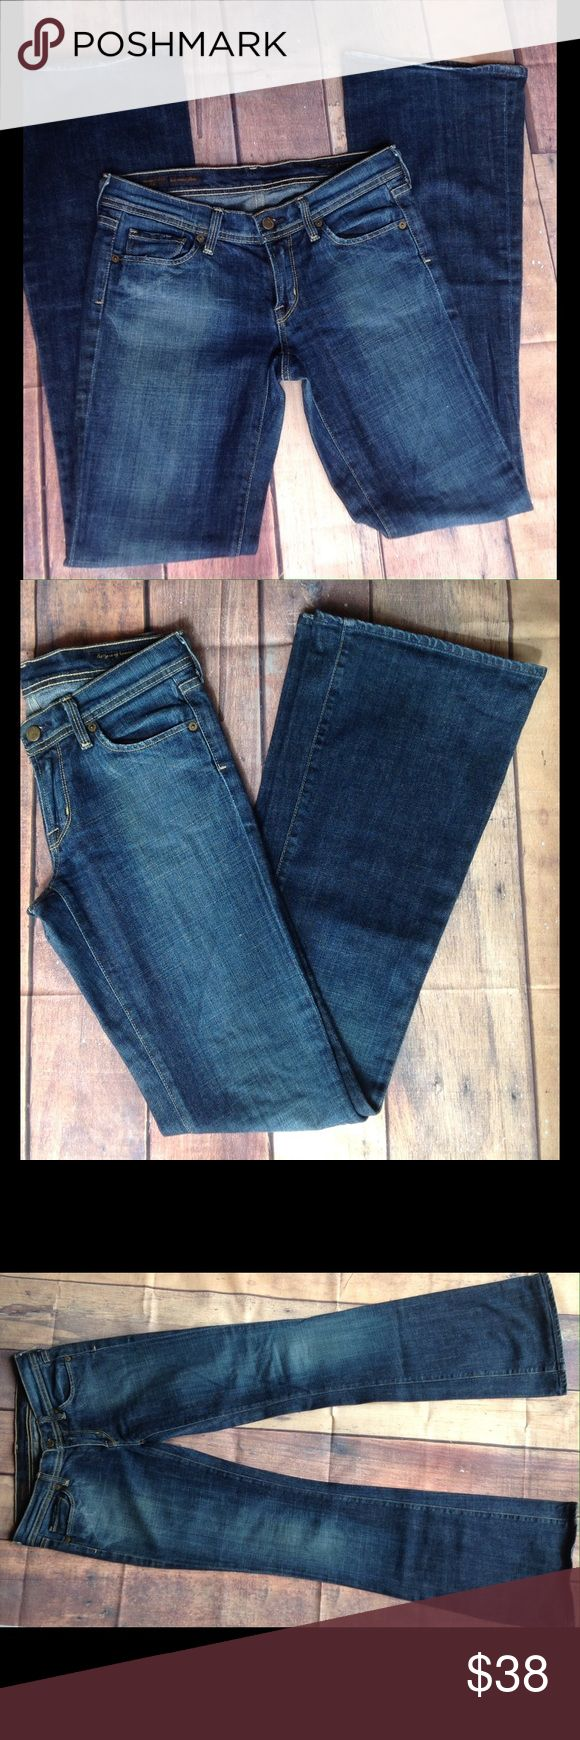 "Citizen Of Humanity Women Jeans Bootcut 27 Beautiful Citizen Of Humanity women Jeans.  Bootcut.  Size 27.  Inseam 34"", Rise 7.5, waist 15"",  Leg opening 10"".  98% cotton, 2% polyurethane.  In excellent used condition.  Smoke free environment.  No trades. Citizen of humanity Jeans Boot Cut"